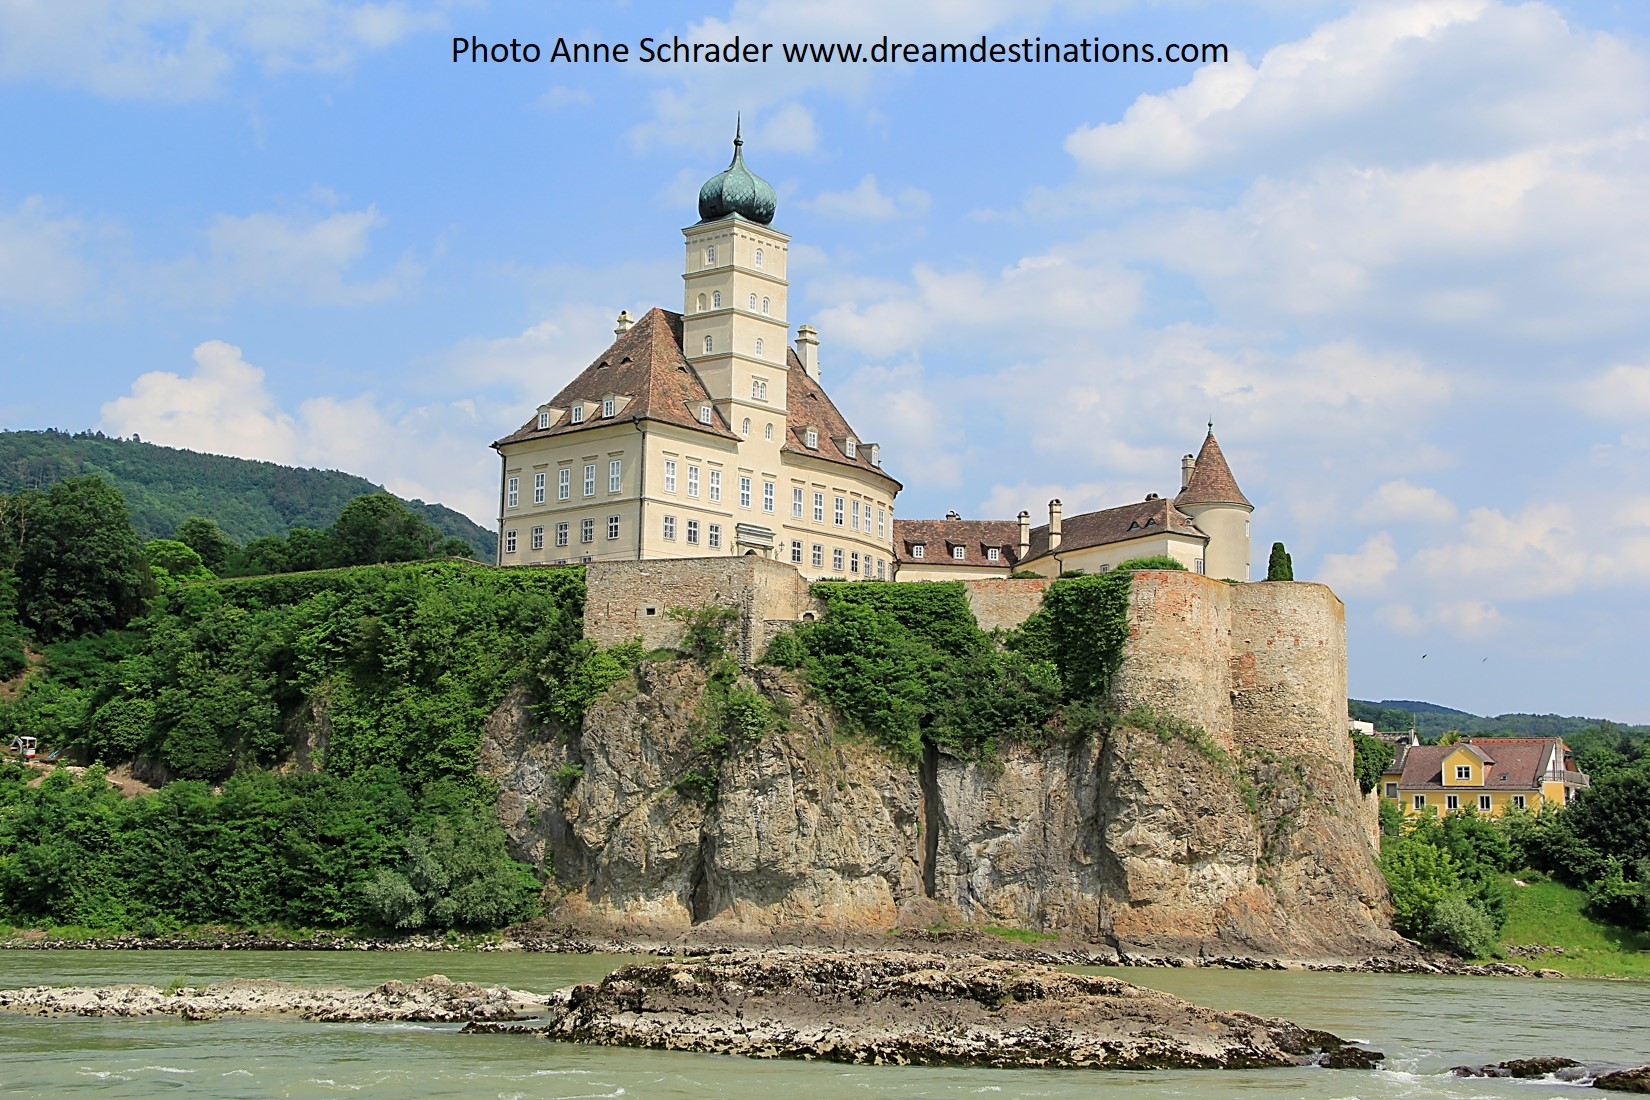 You could never see a castle this clearly from land but it is awe inspiring when you cruise the Danube—Schonbuhl Castle in Austria